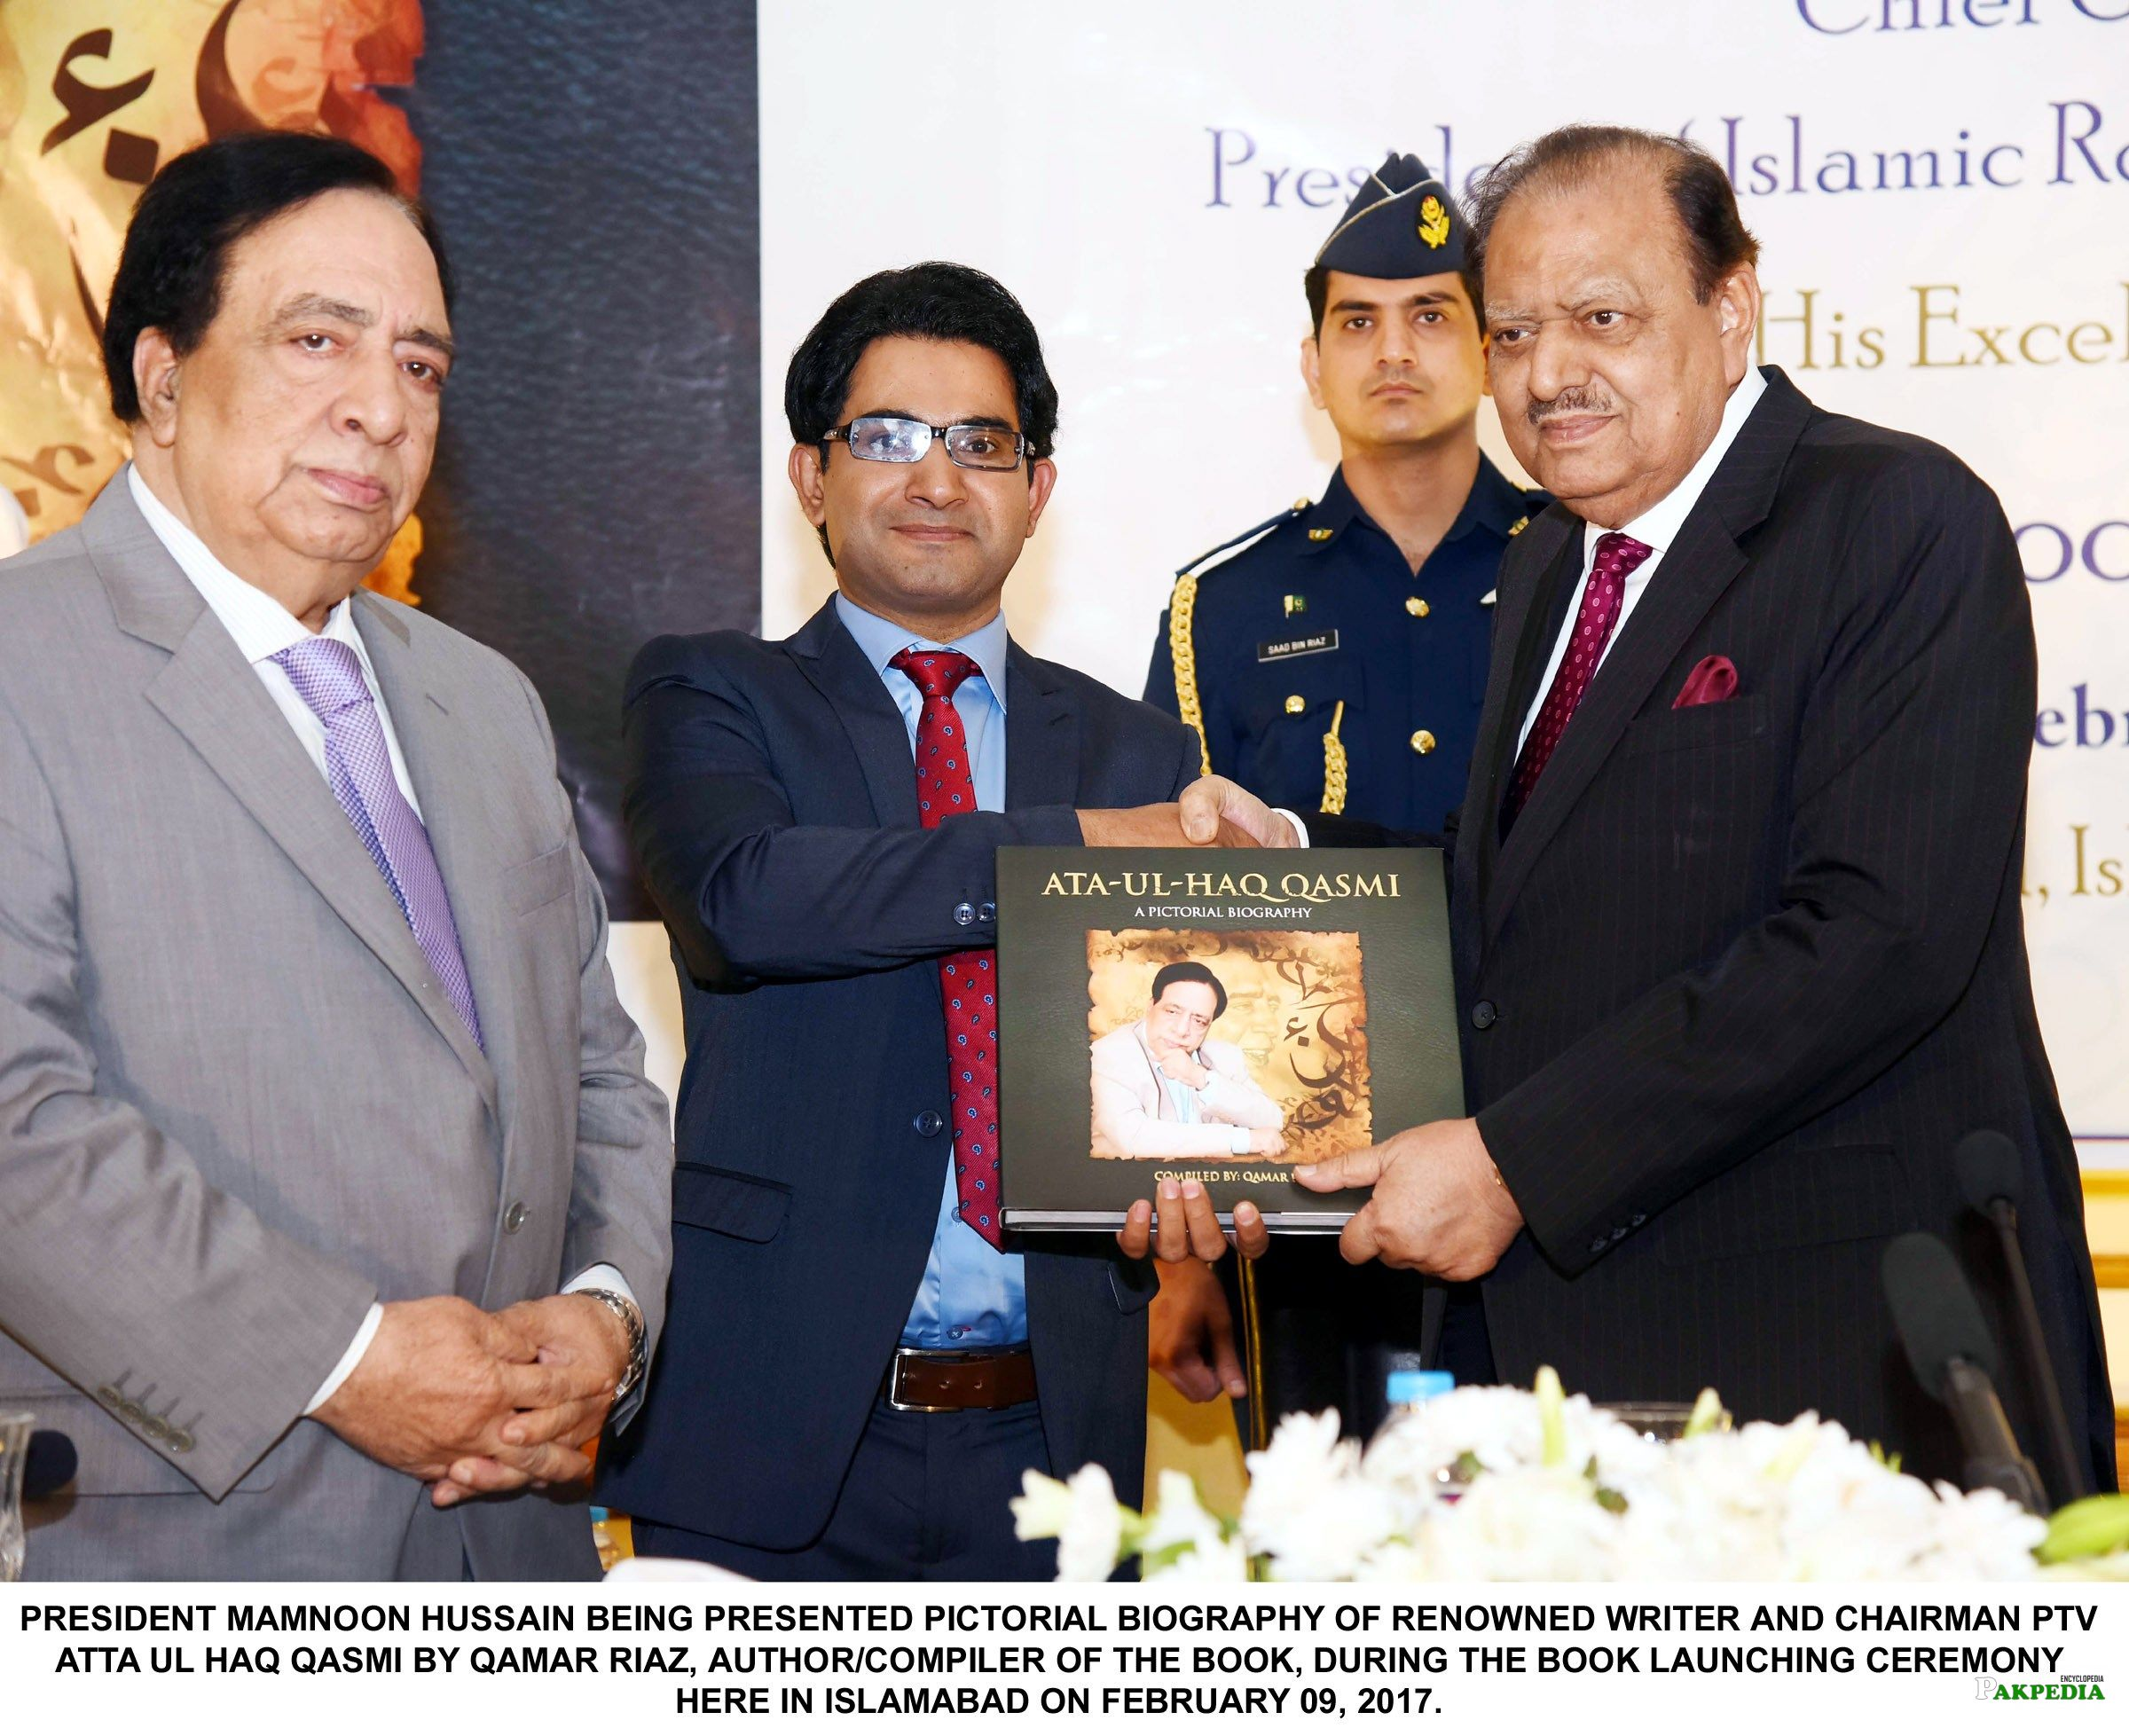 President Mamnoon Hussain Being Presented Pictorial Biography Of Renowned Writer And Chairman PTV Atta Ul Haq Qasmi